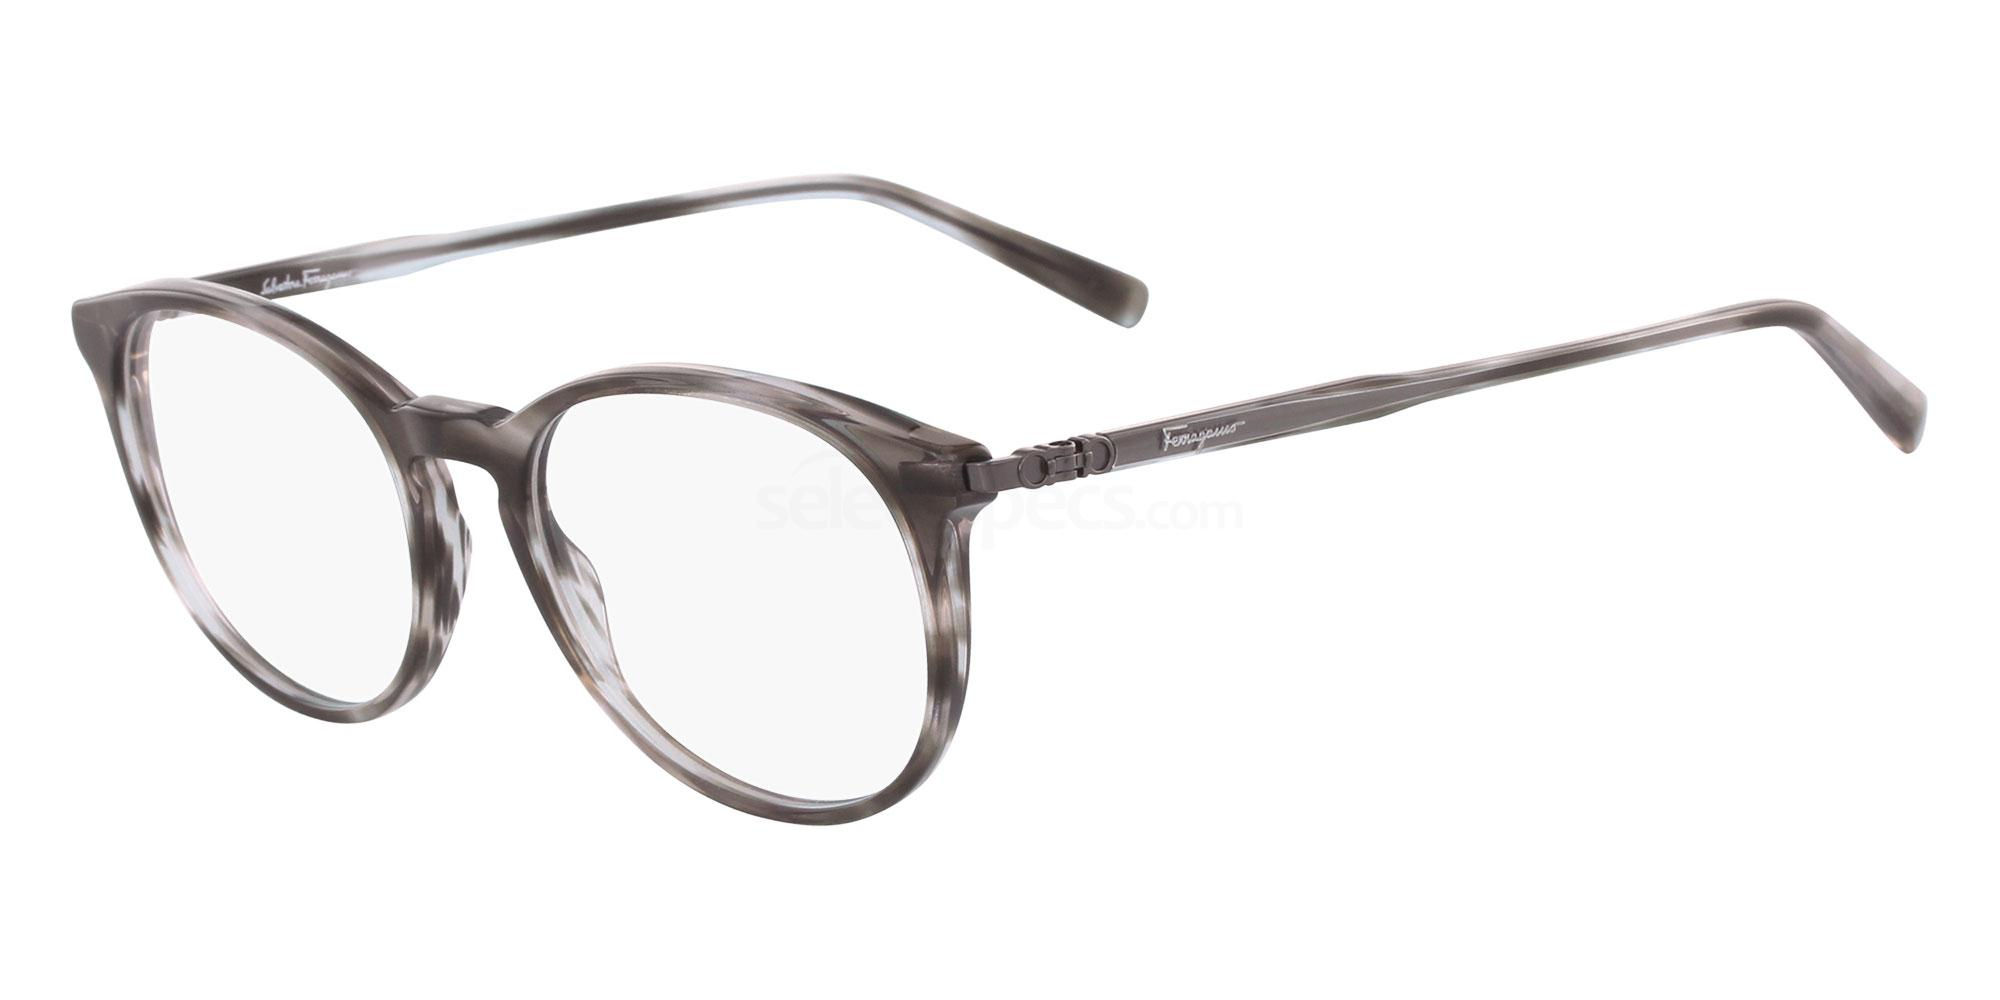 003 SF2823 Glasses, Salvatore Ferragamo